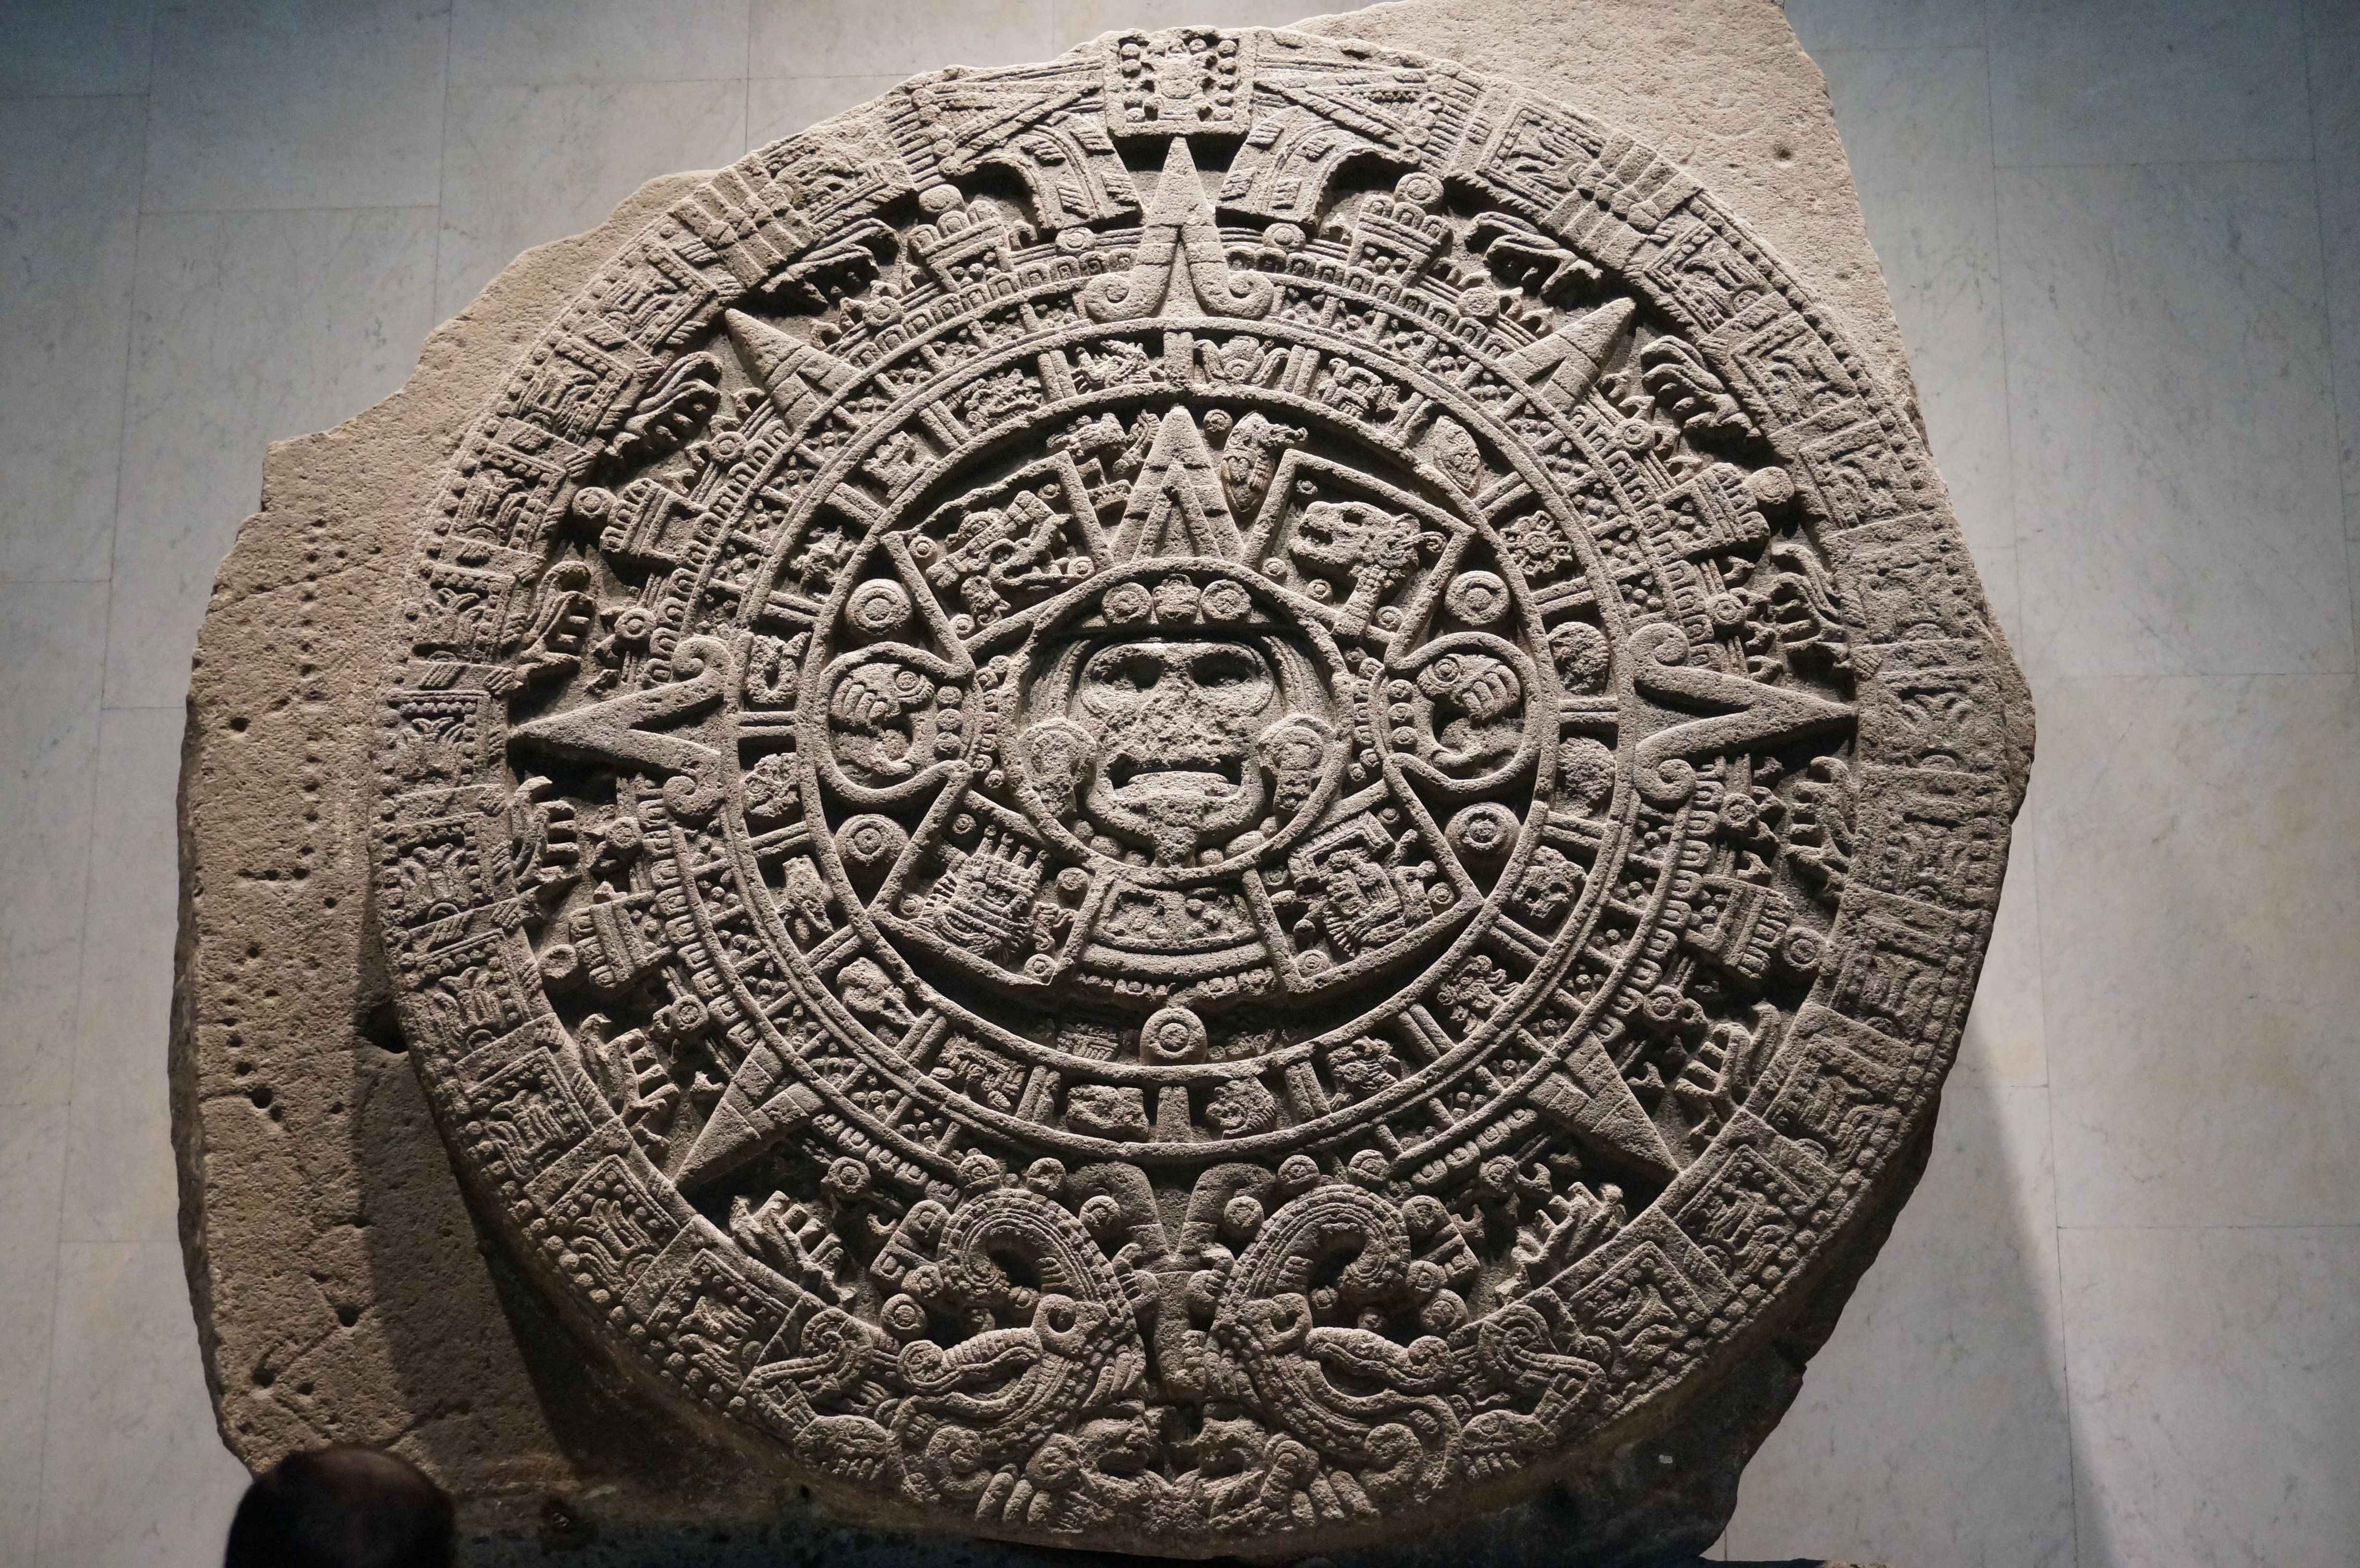 La Piedra Del Sol, or Sun Stone, which was used as a calendar by the Mexica people. Located in the Museo Nacional de Antropología (National Museum of Anthropology) in Mexico City.